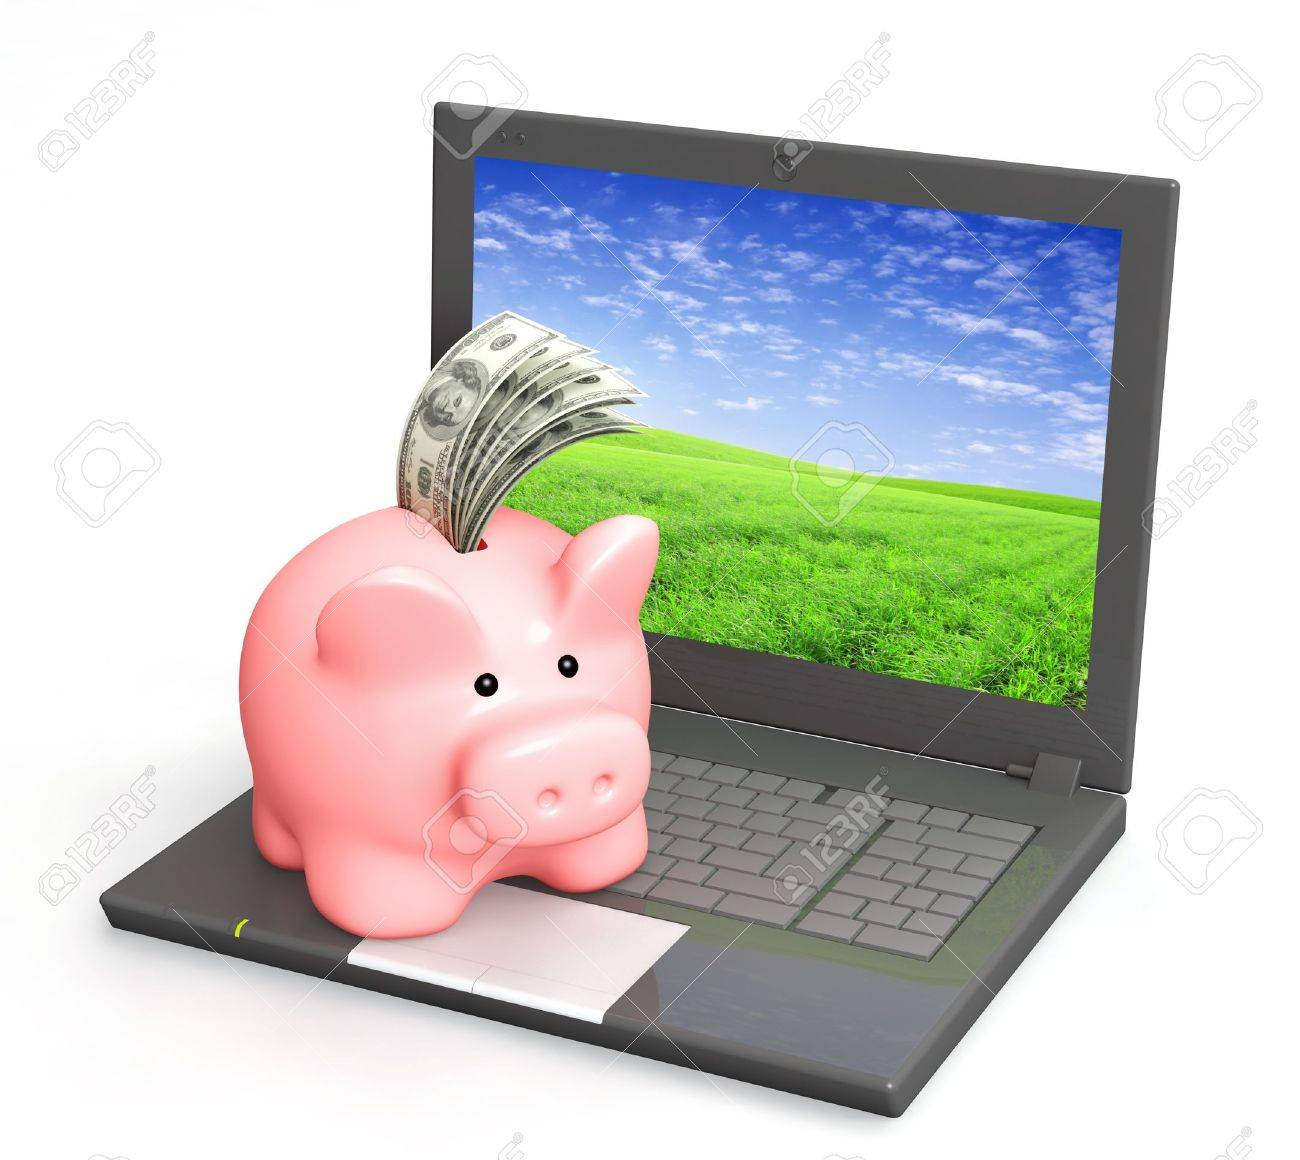 Electronic bank account. Piggy bank and laptop. Objects isolated over white Stock Photo - 8948524